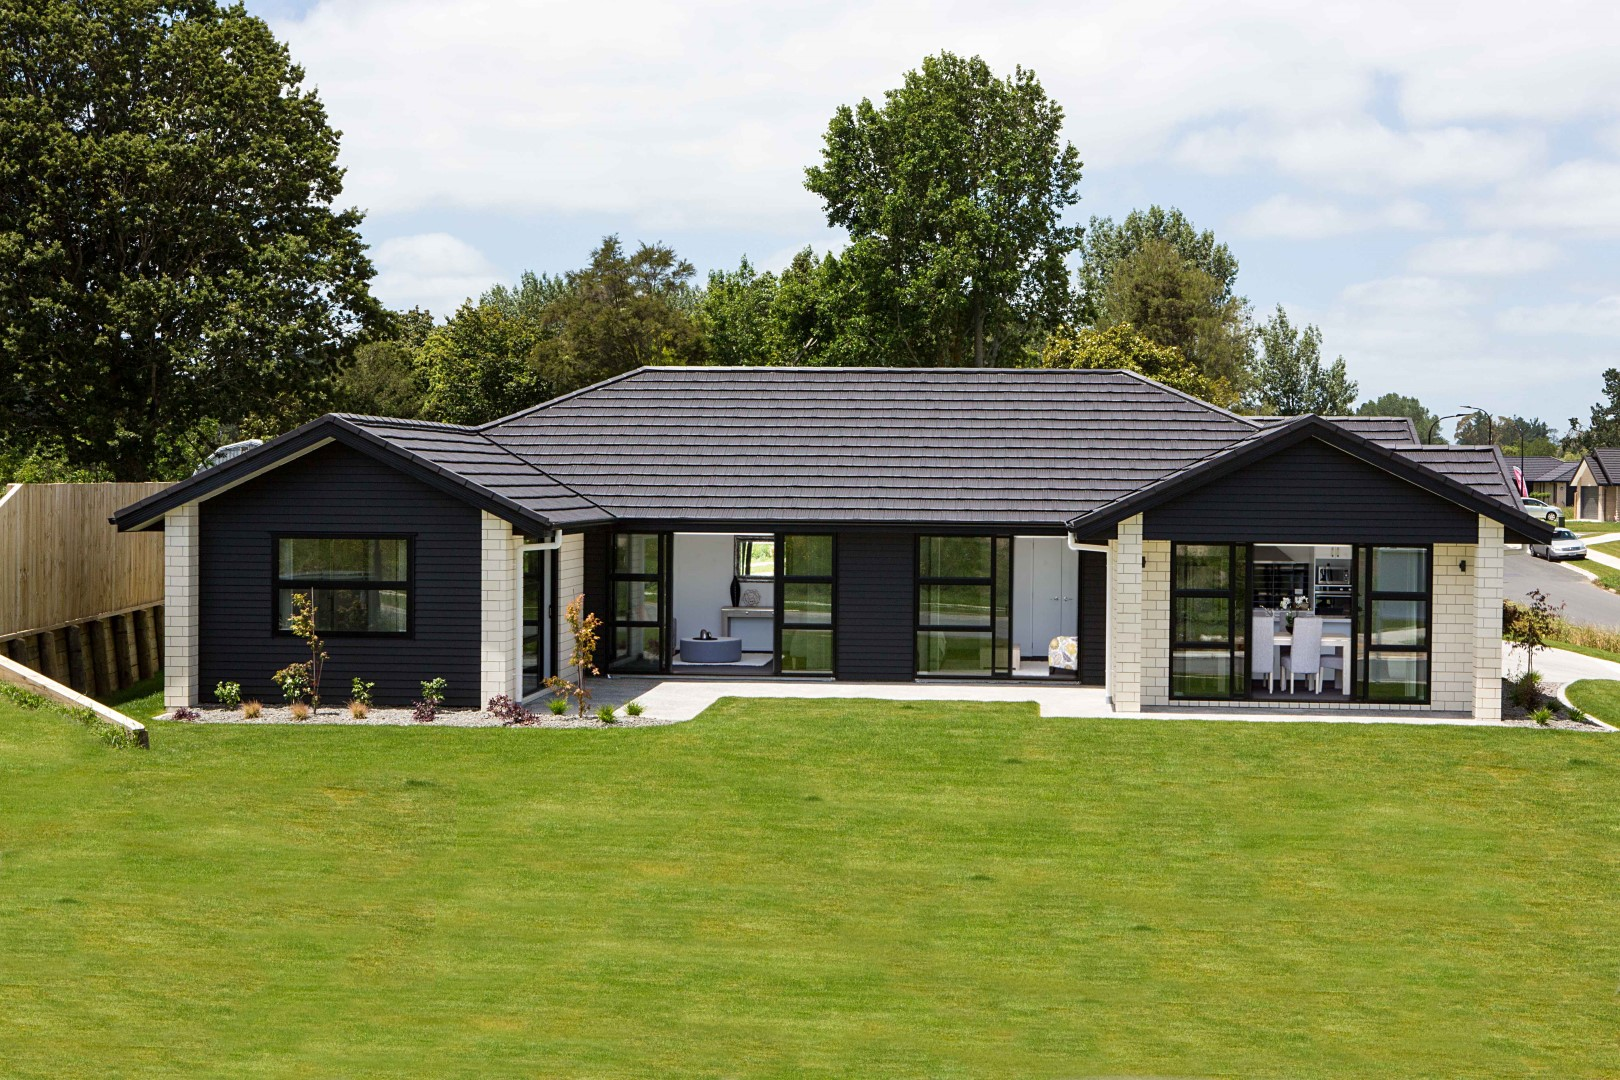 Generation homes wins house of the year award for Generation homes